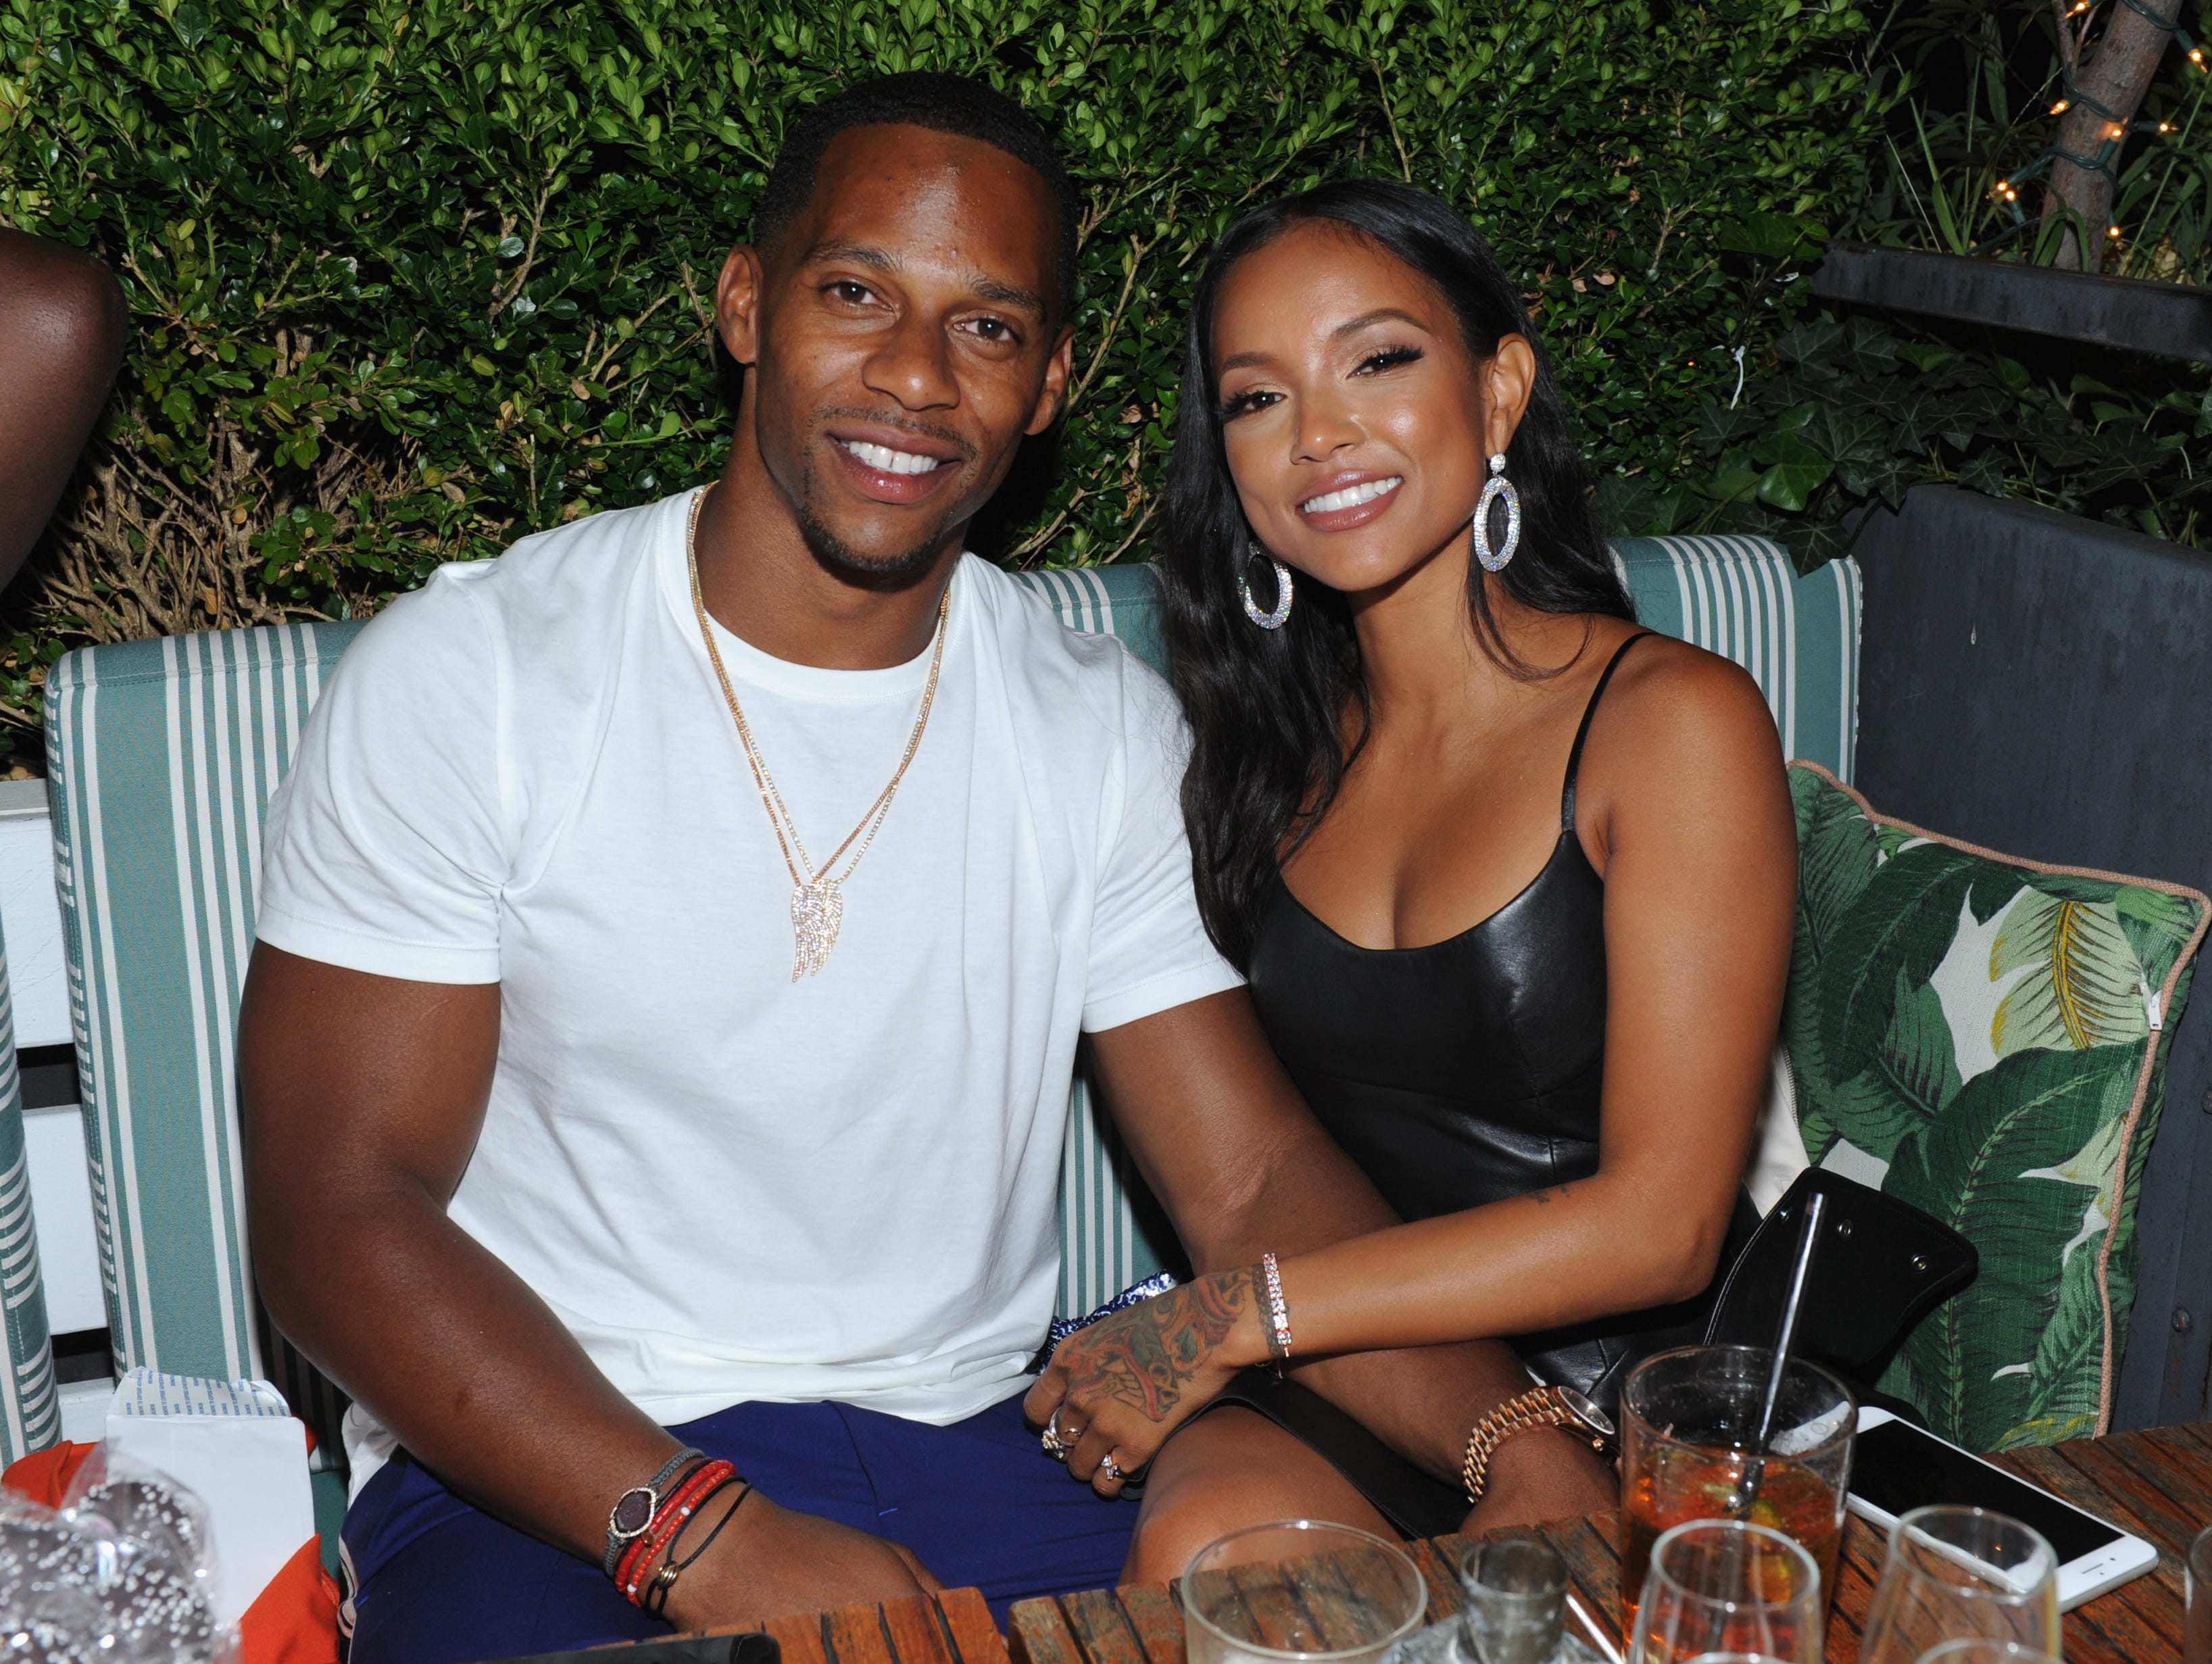 Victor Cruz and Karrueche Tran posed for a photo together at the Republic Records VMA After-Party following the award ceremony in New York on Aug. 20, 2018.